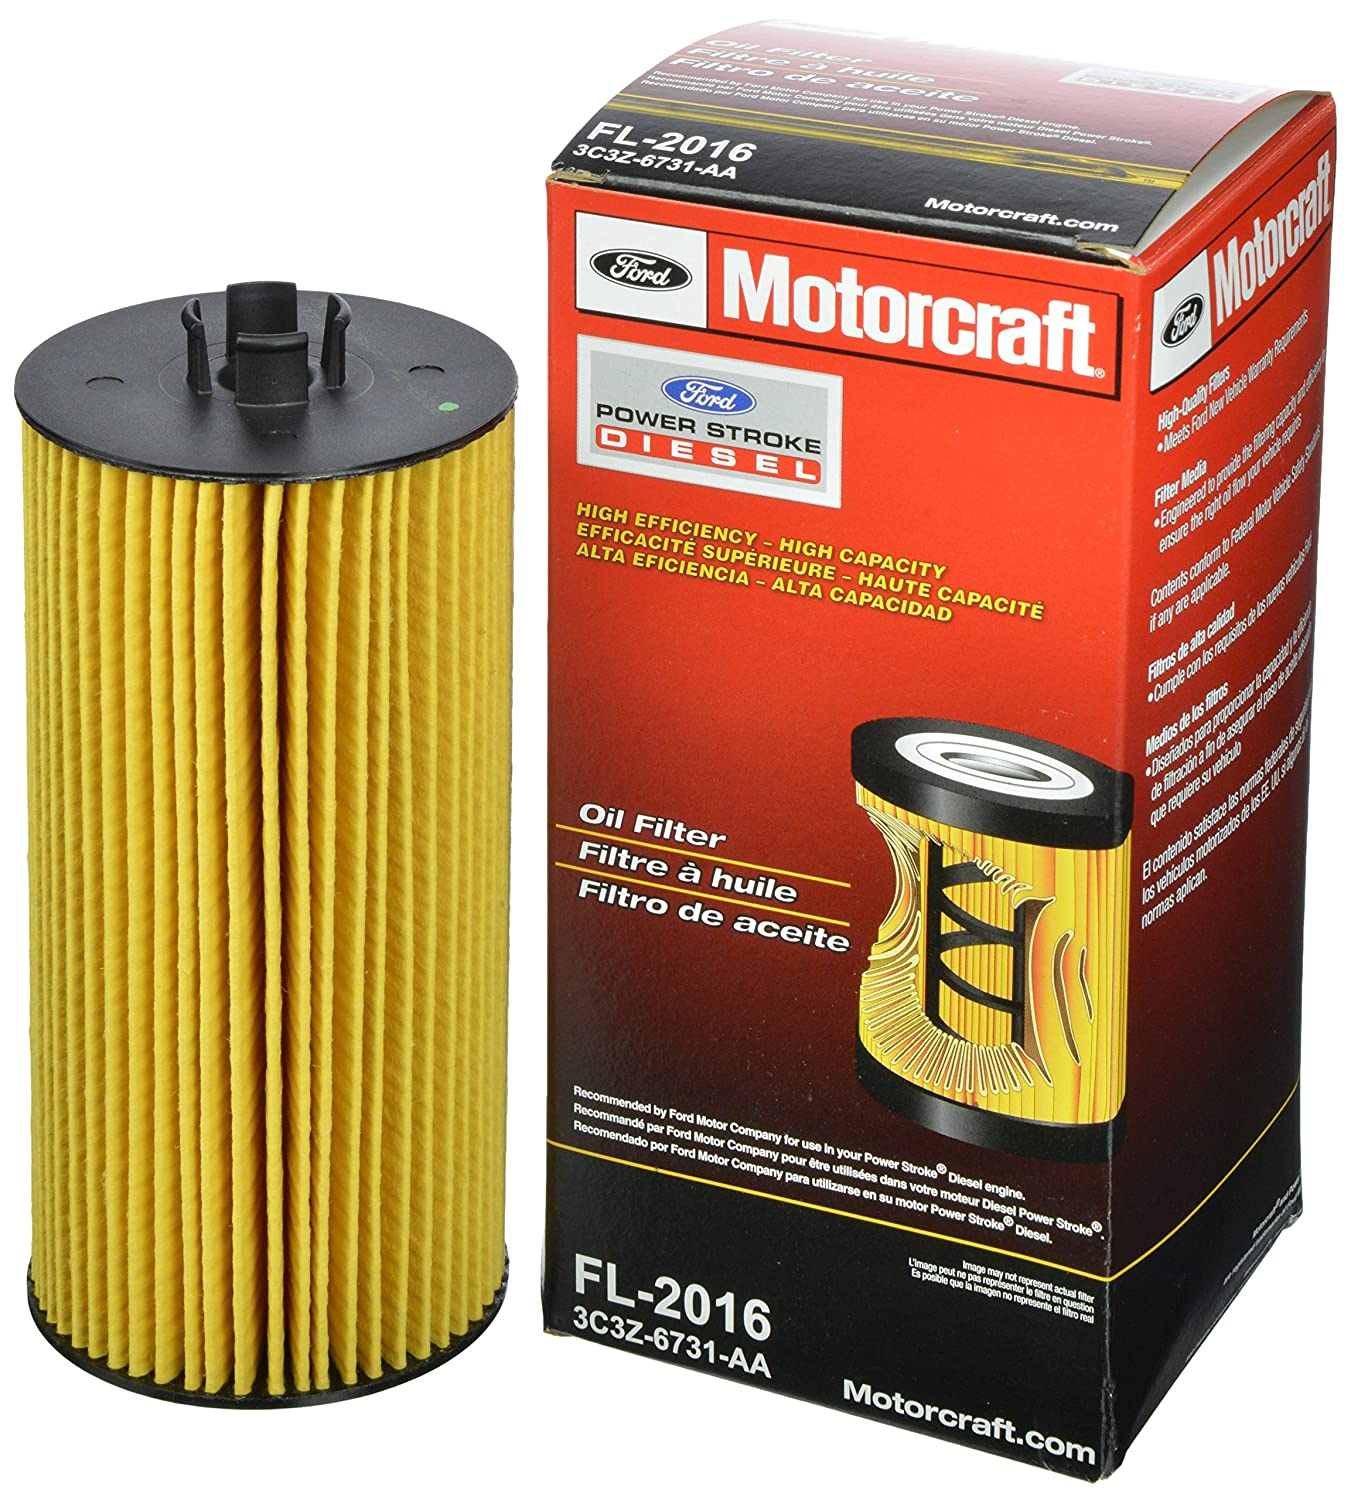 Motorcraft Fl 2016 Oil Filter Automotive E350 Fuel